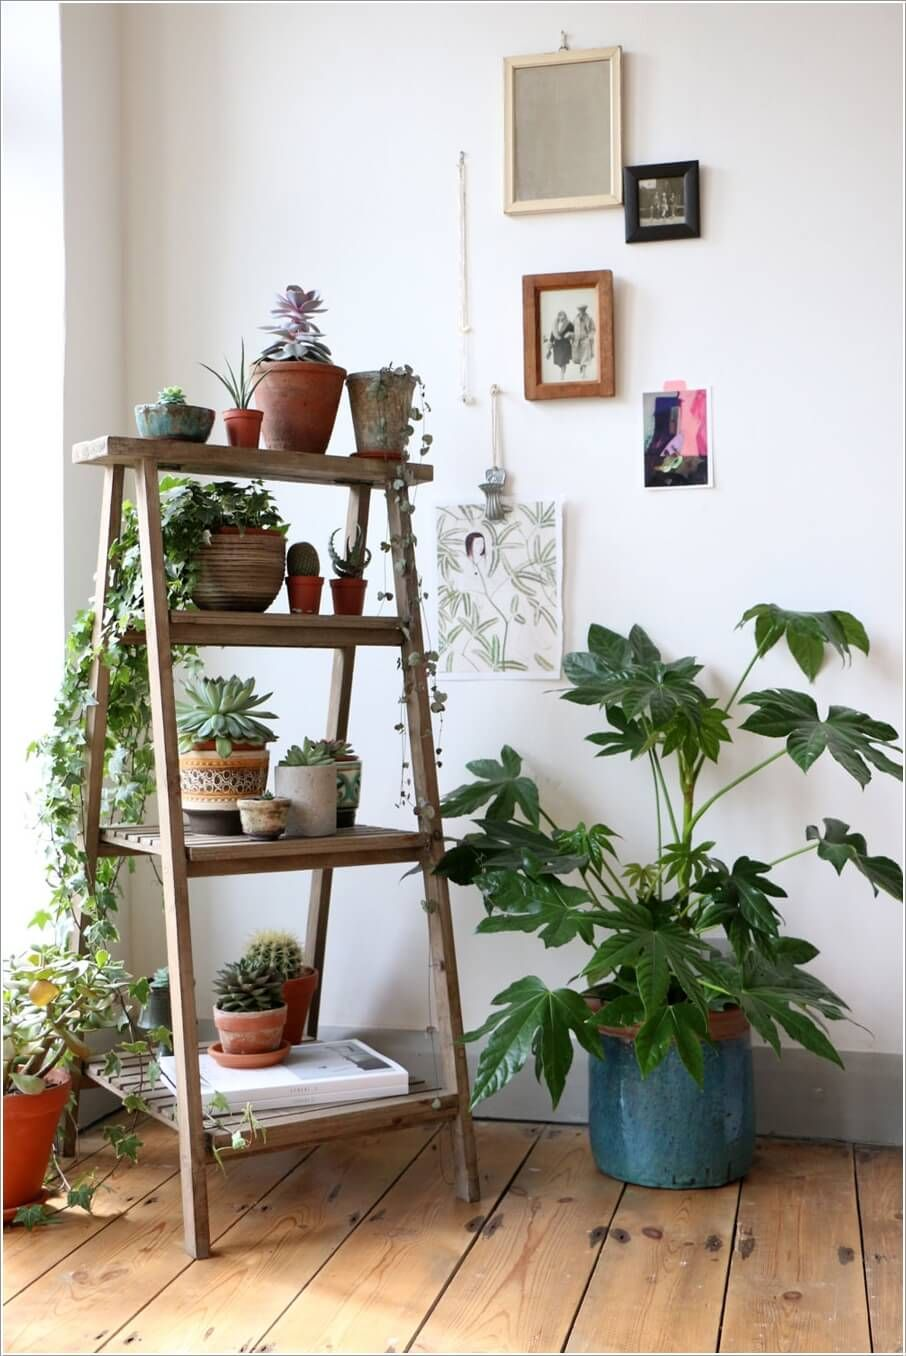 Pin by sandra de miguel on plants pinterest plants display and